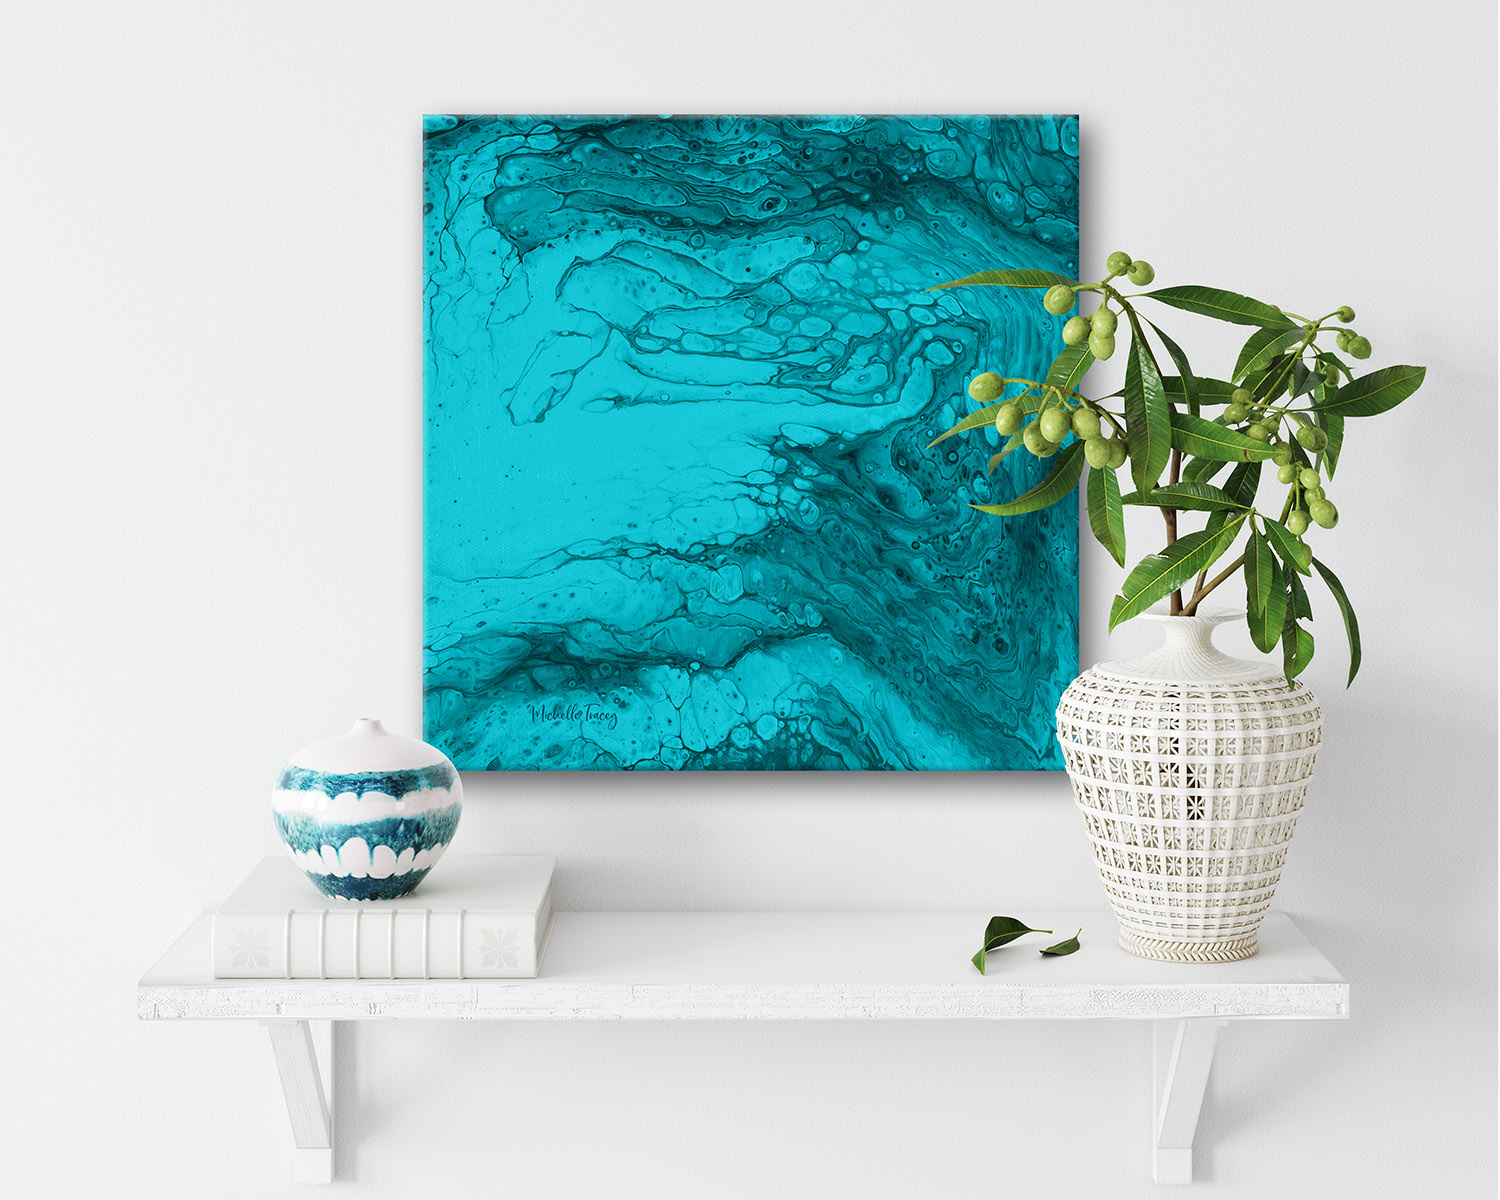 Ocean Abstract Painting Oceans Purifying Breath By Michelle Tracey